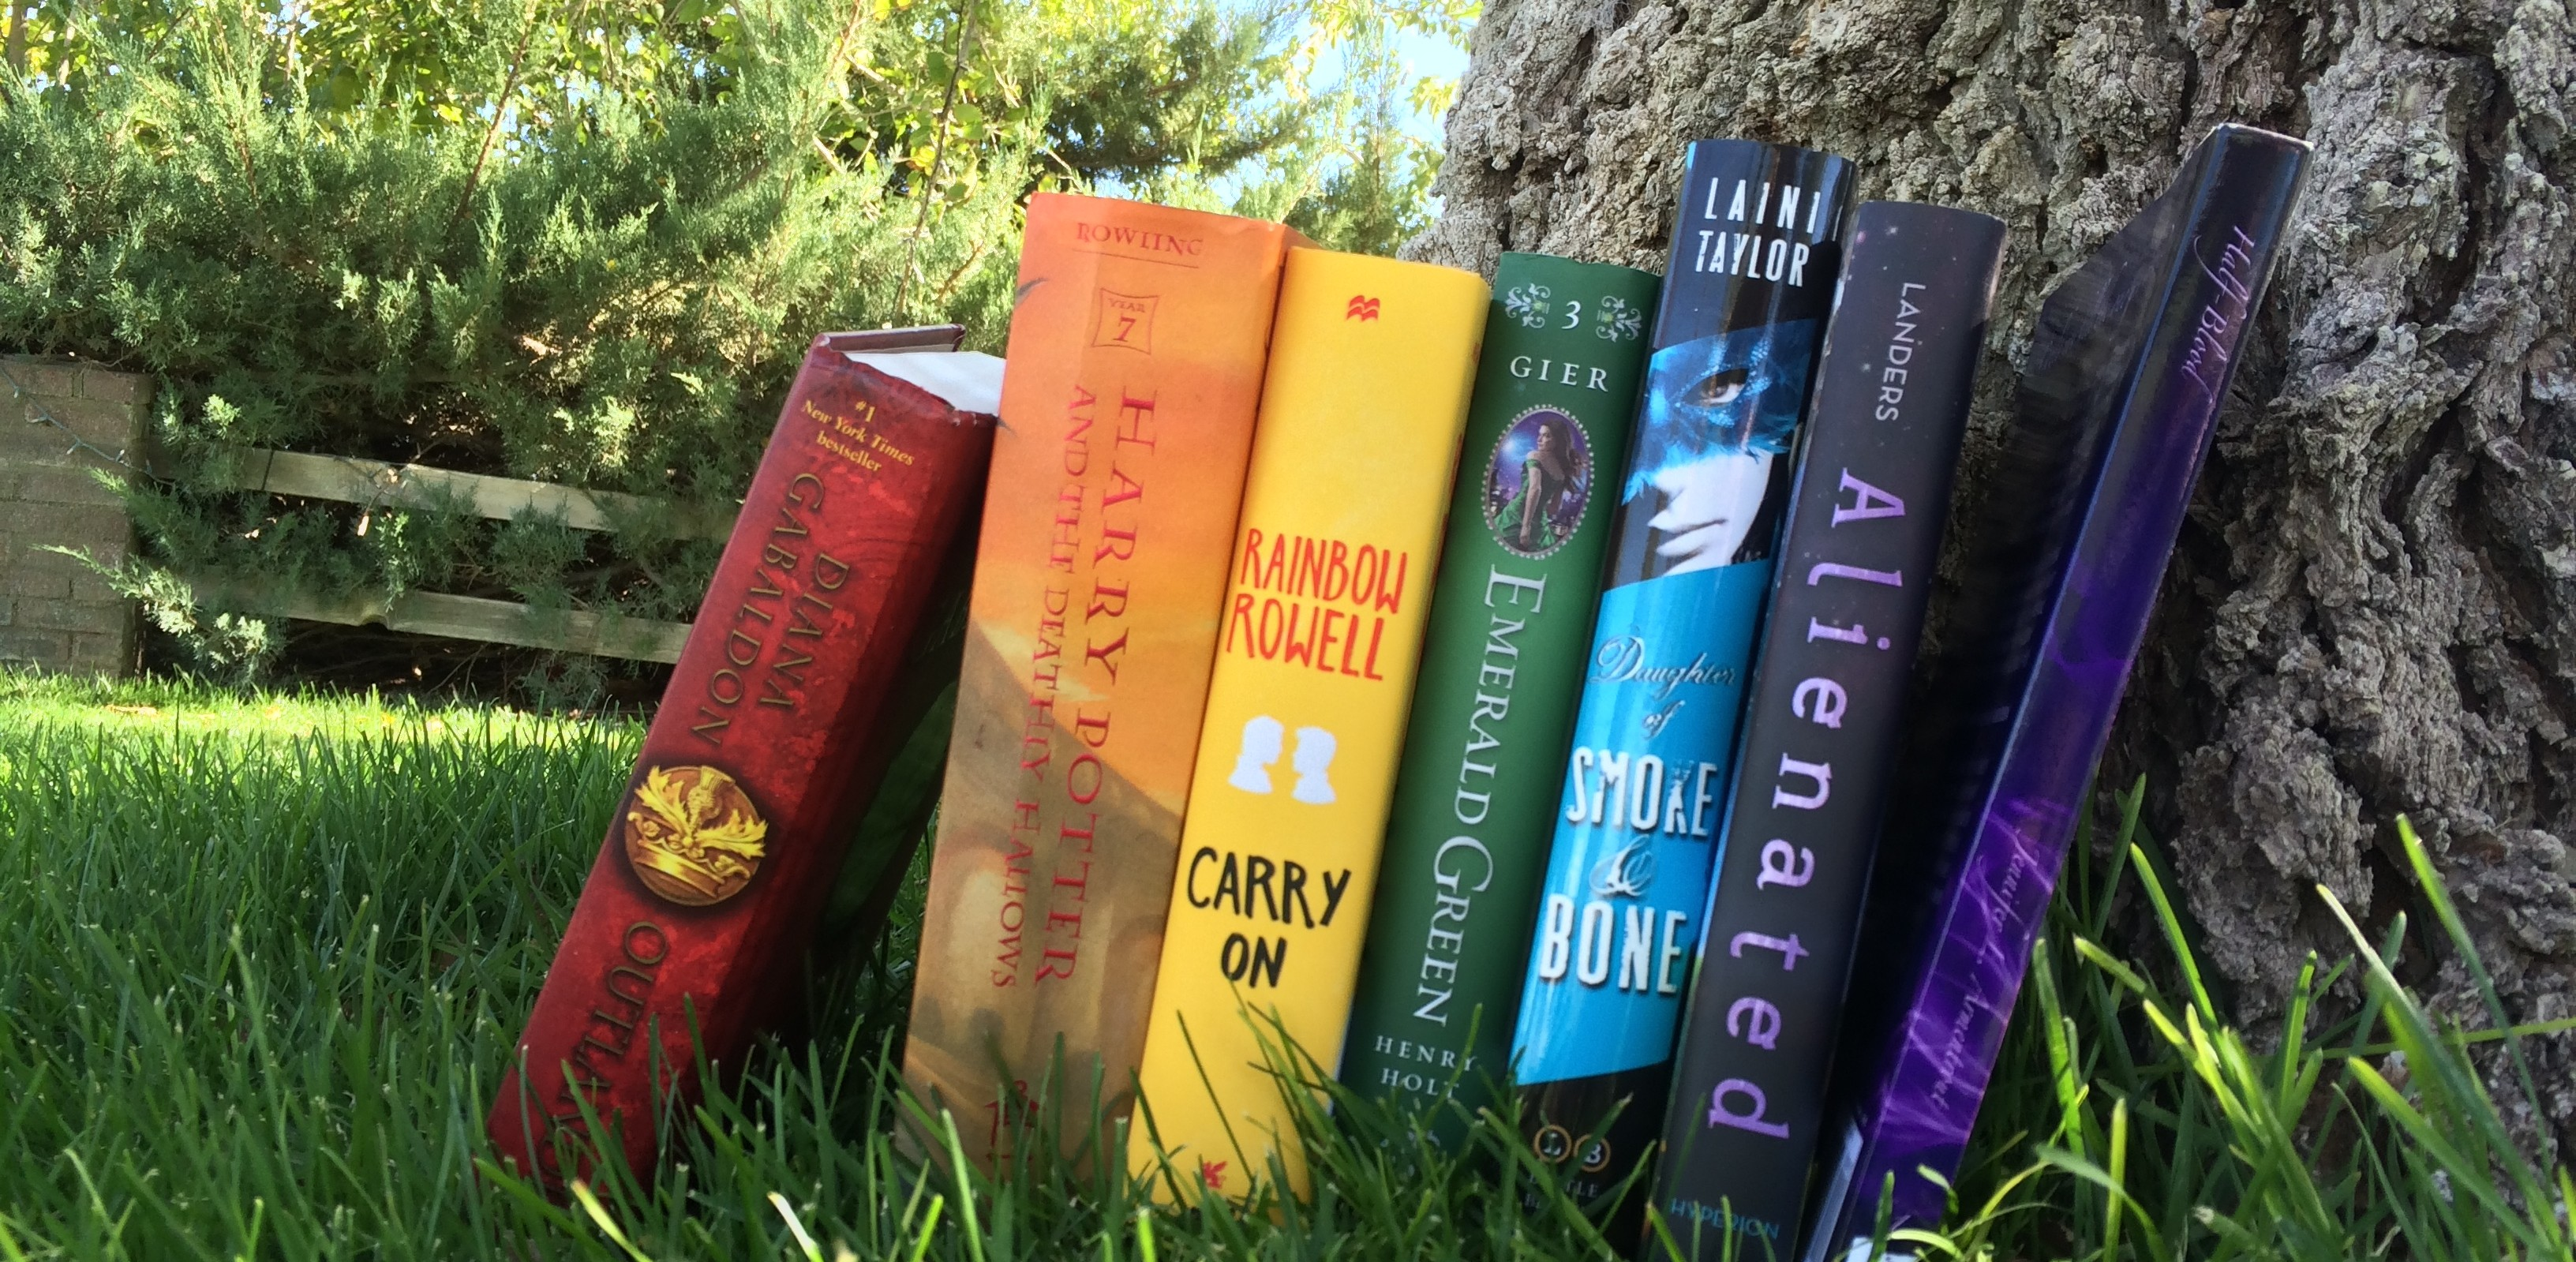 5 Ways to Celebrate Book Lovers Day